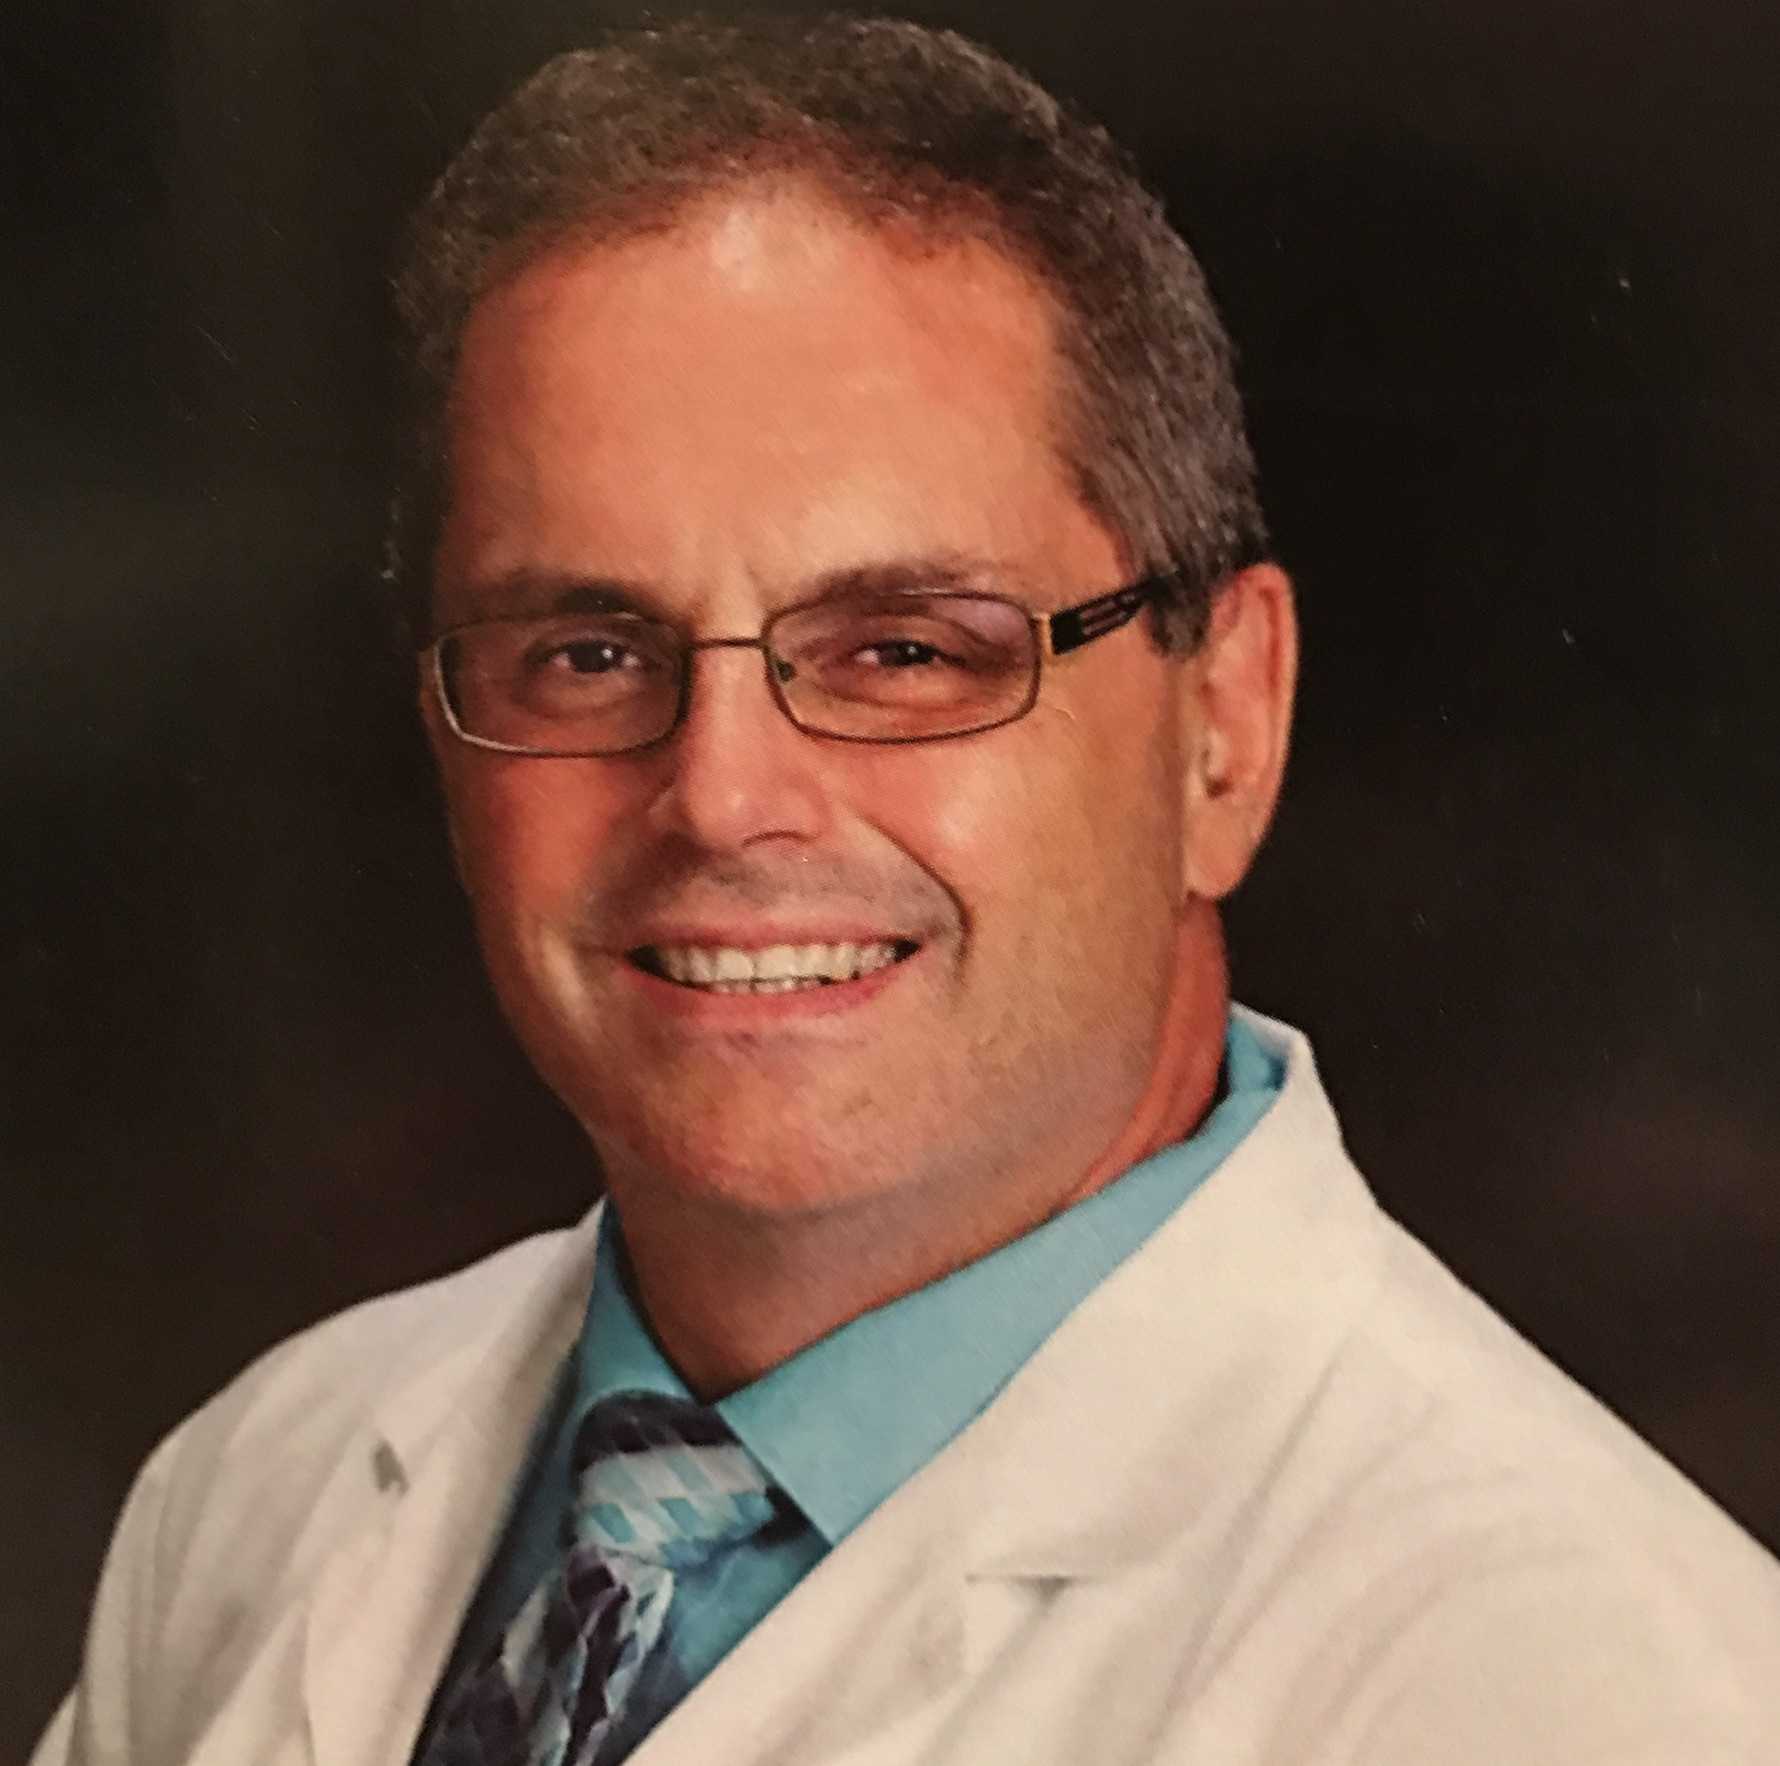 Leading Pulmonologist. Emilio Mazza. MD. PhD is to be Recognized as a 2018 Top Doctor in Moorestown. New Jersey - Health News Today